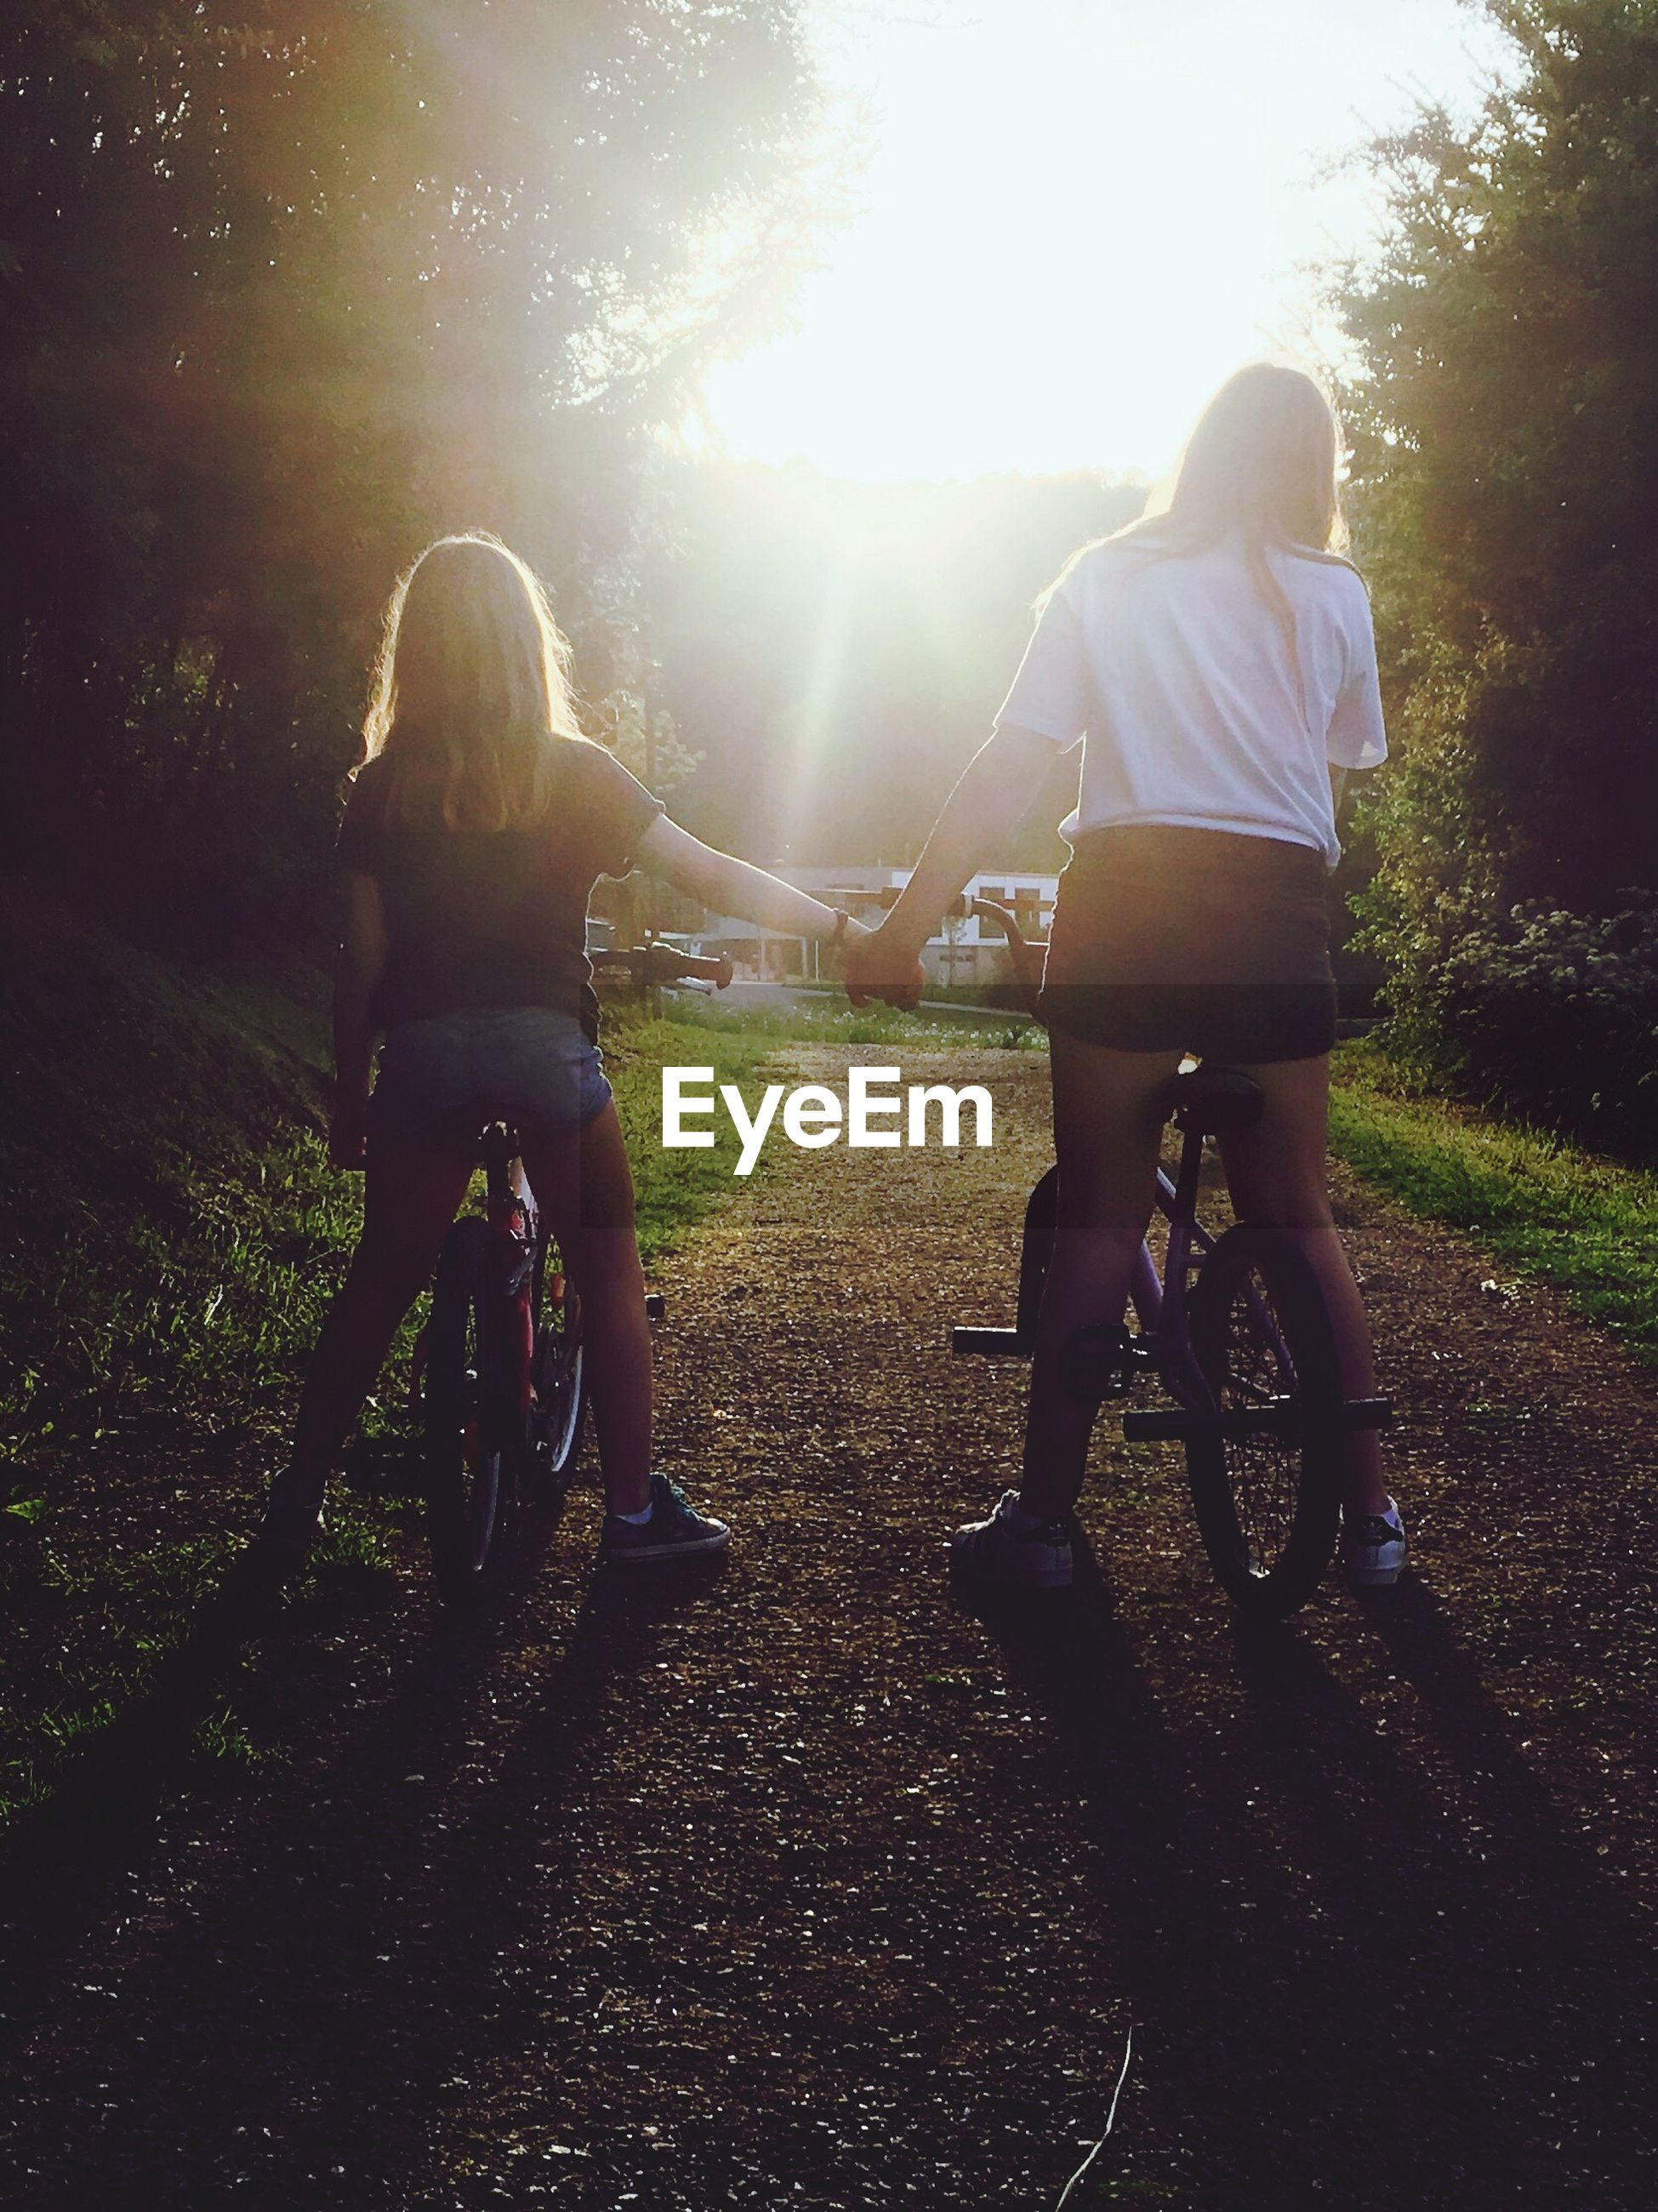 two people, bicycle, togetherness, childhood, full length, leisure activity, bonding, real people, rear view, girls, casual clothing, riding, cycling, day, happiness, outdoors, friendship, lifestyles, tree, sunlight, bmx cycling, grass, cycling helmet, nature, young adult, people